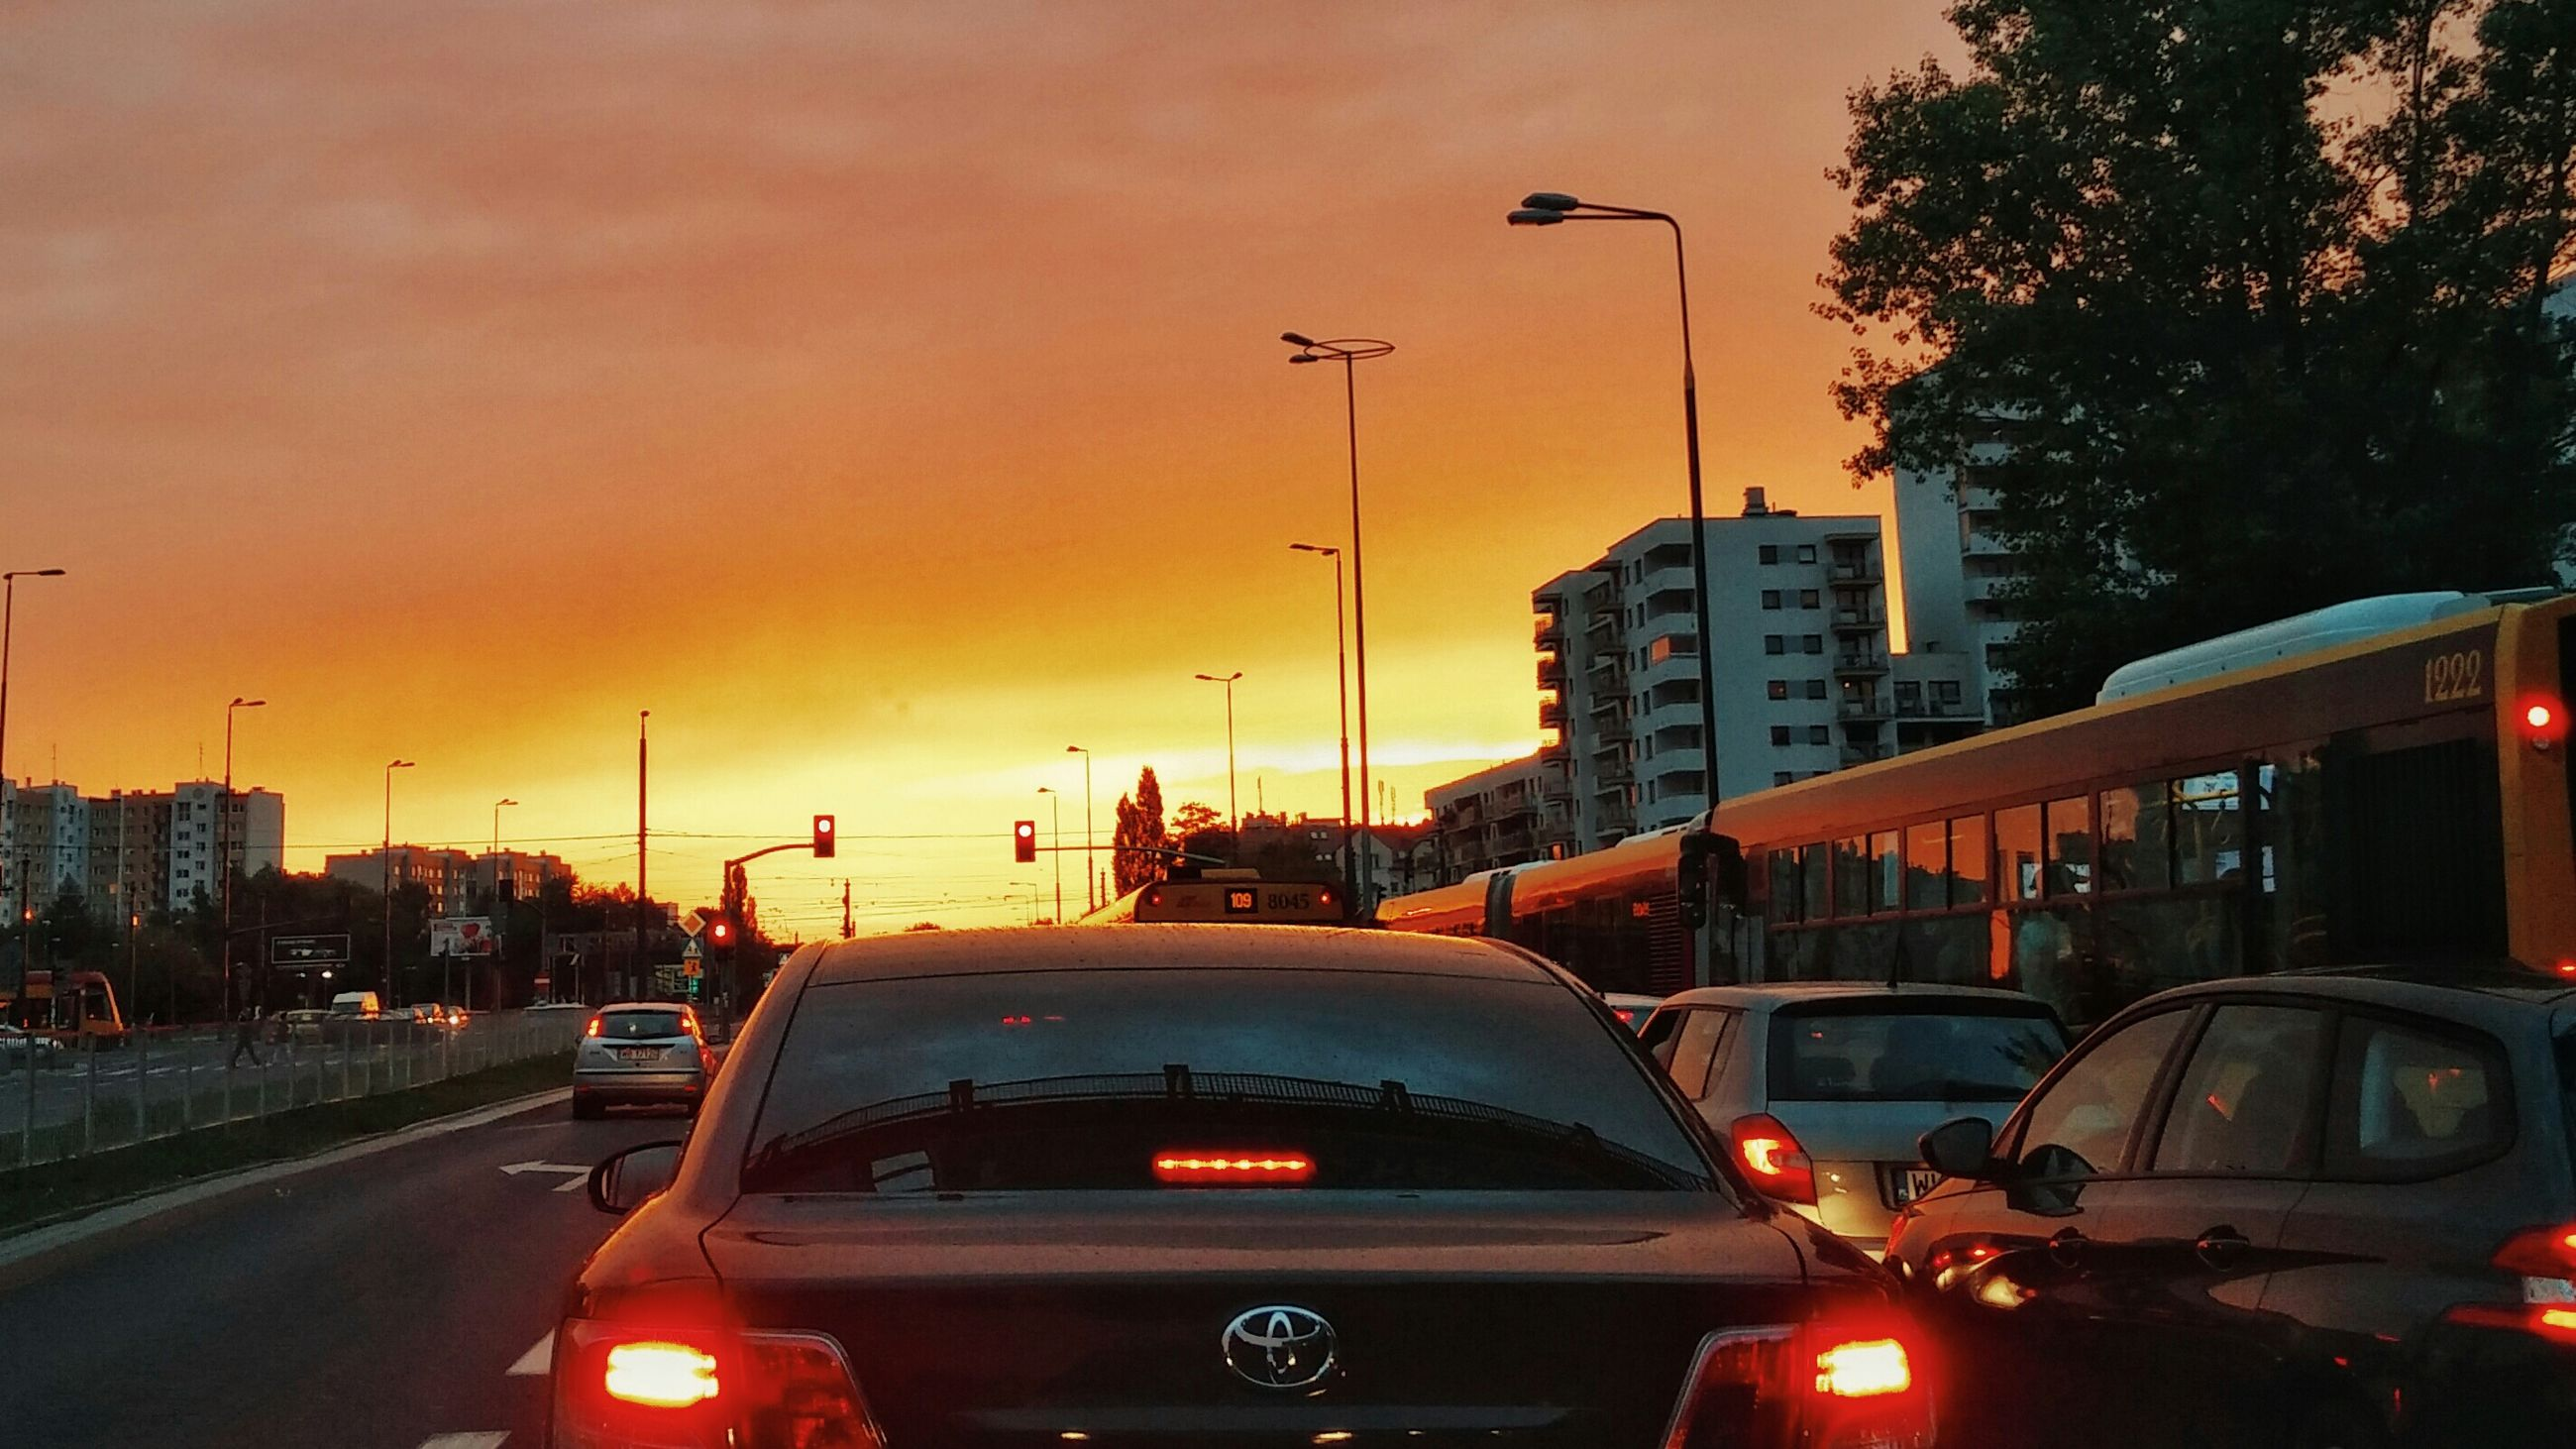 transportation, car, land vehicle, mode of transport, traffic, sunset, road, street, city, on the move, sky, street light, building exterior, architecture, illuminated, built structure, road marking, city street, travel, orange color